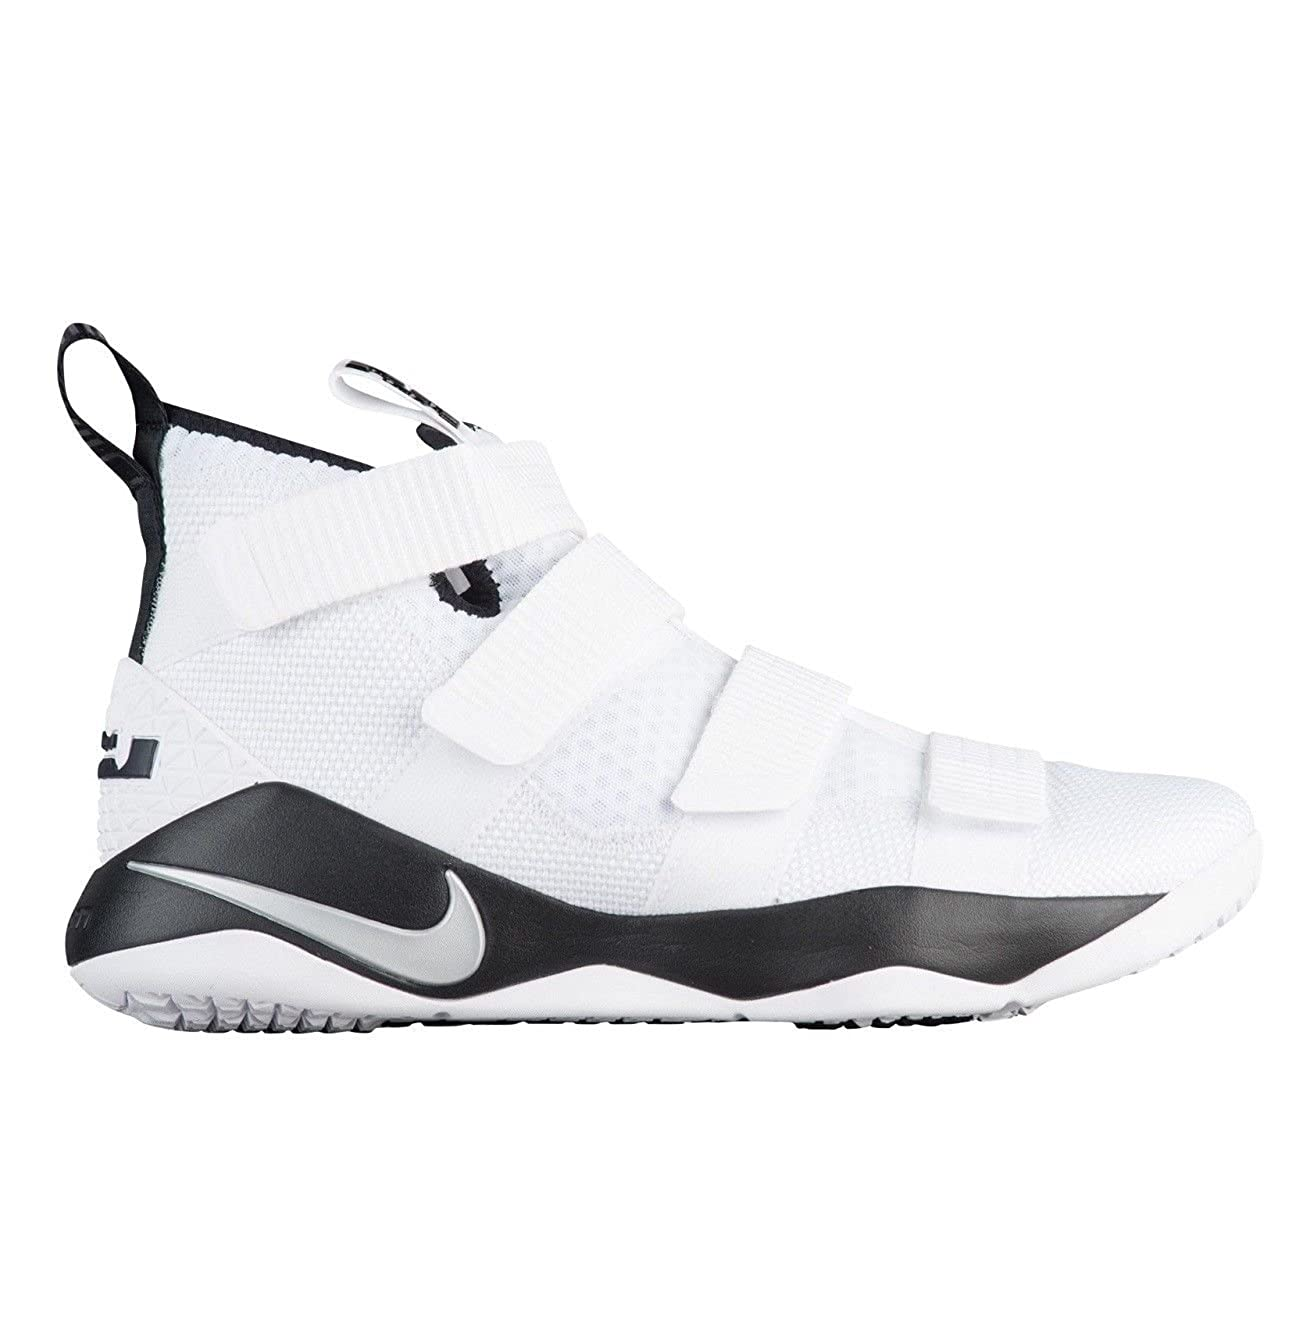 new arrival 0b168 b27d2 Nike Lebron Soldier XI TB Promo Men's Basketball Shoes